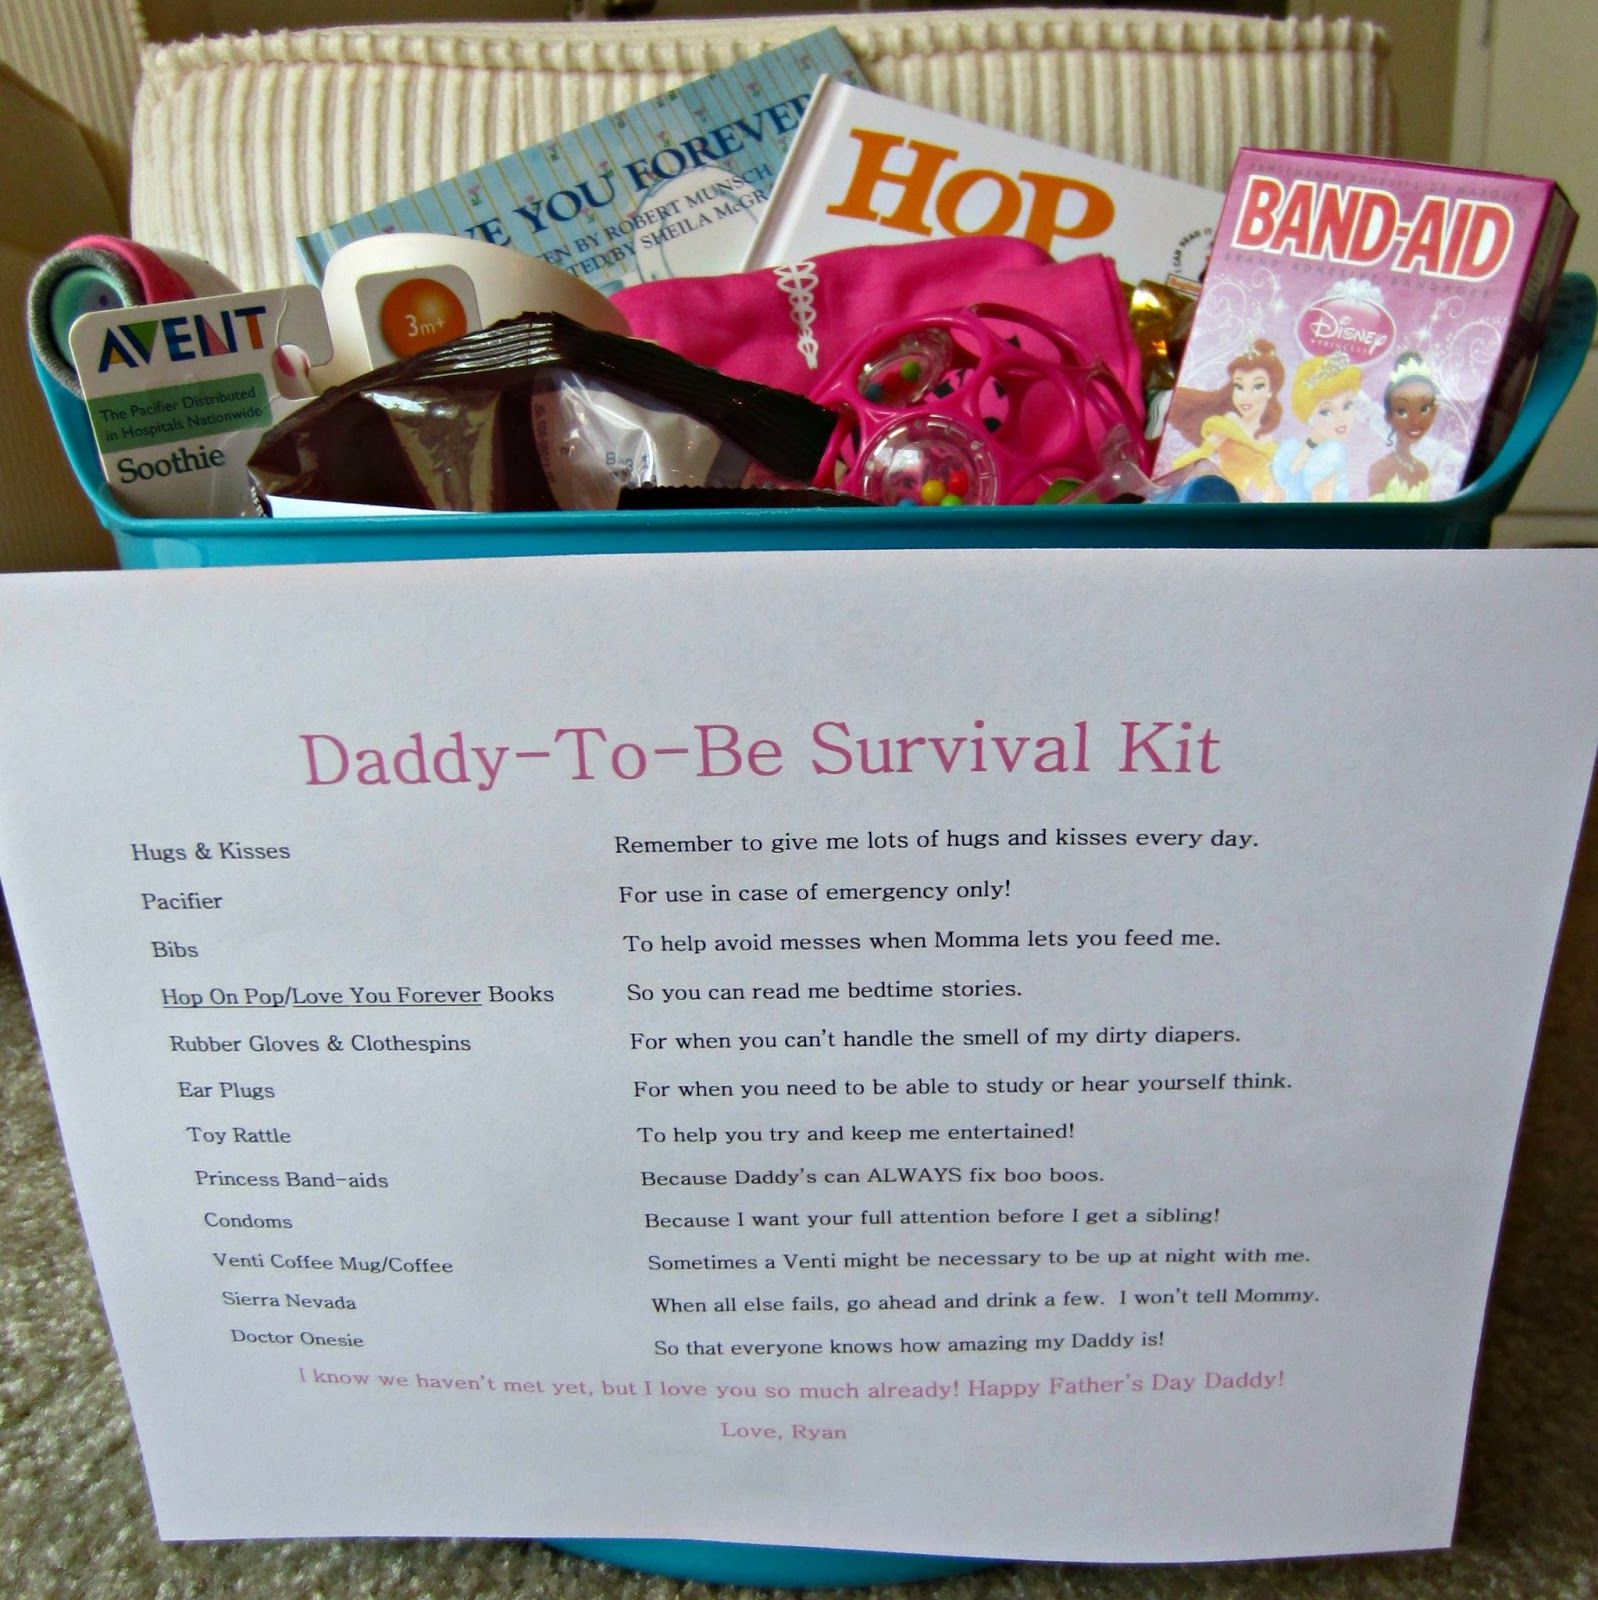 the scurlock scene daddy to be survival kit products i love daddy survival kits baby dad. Black Bedroom Furniture Sets. Home Design Ideas